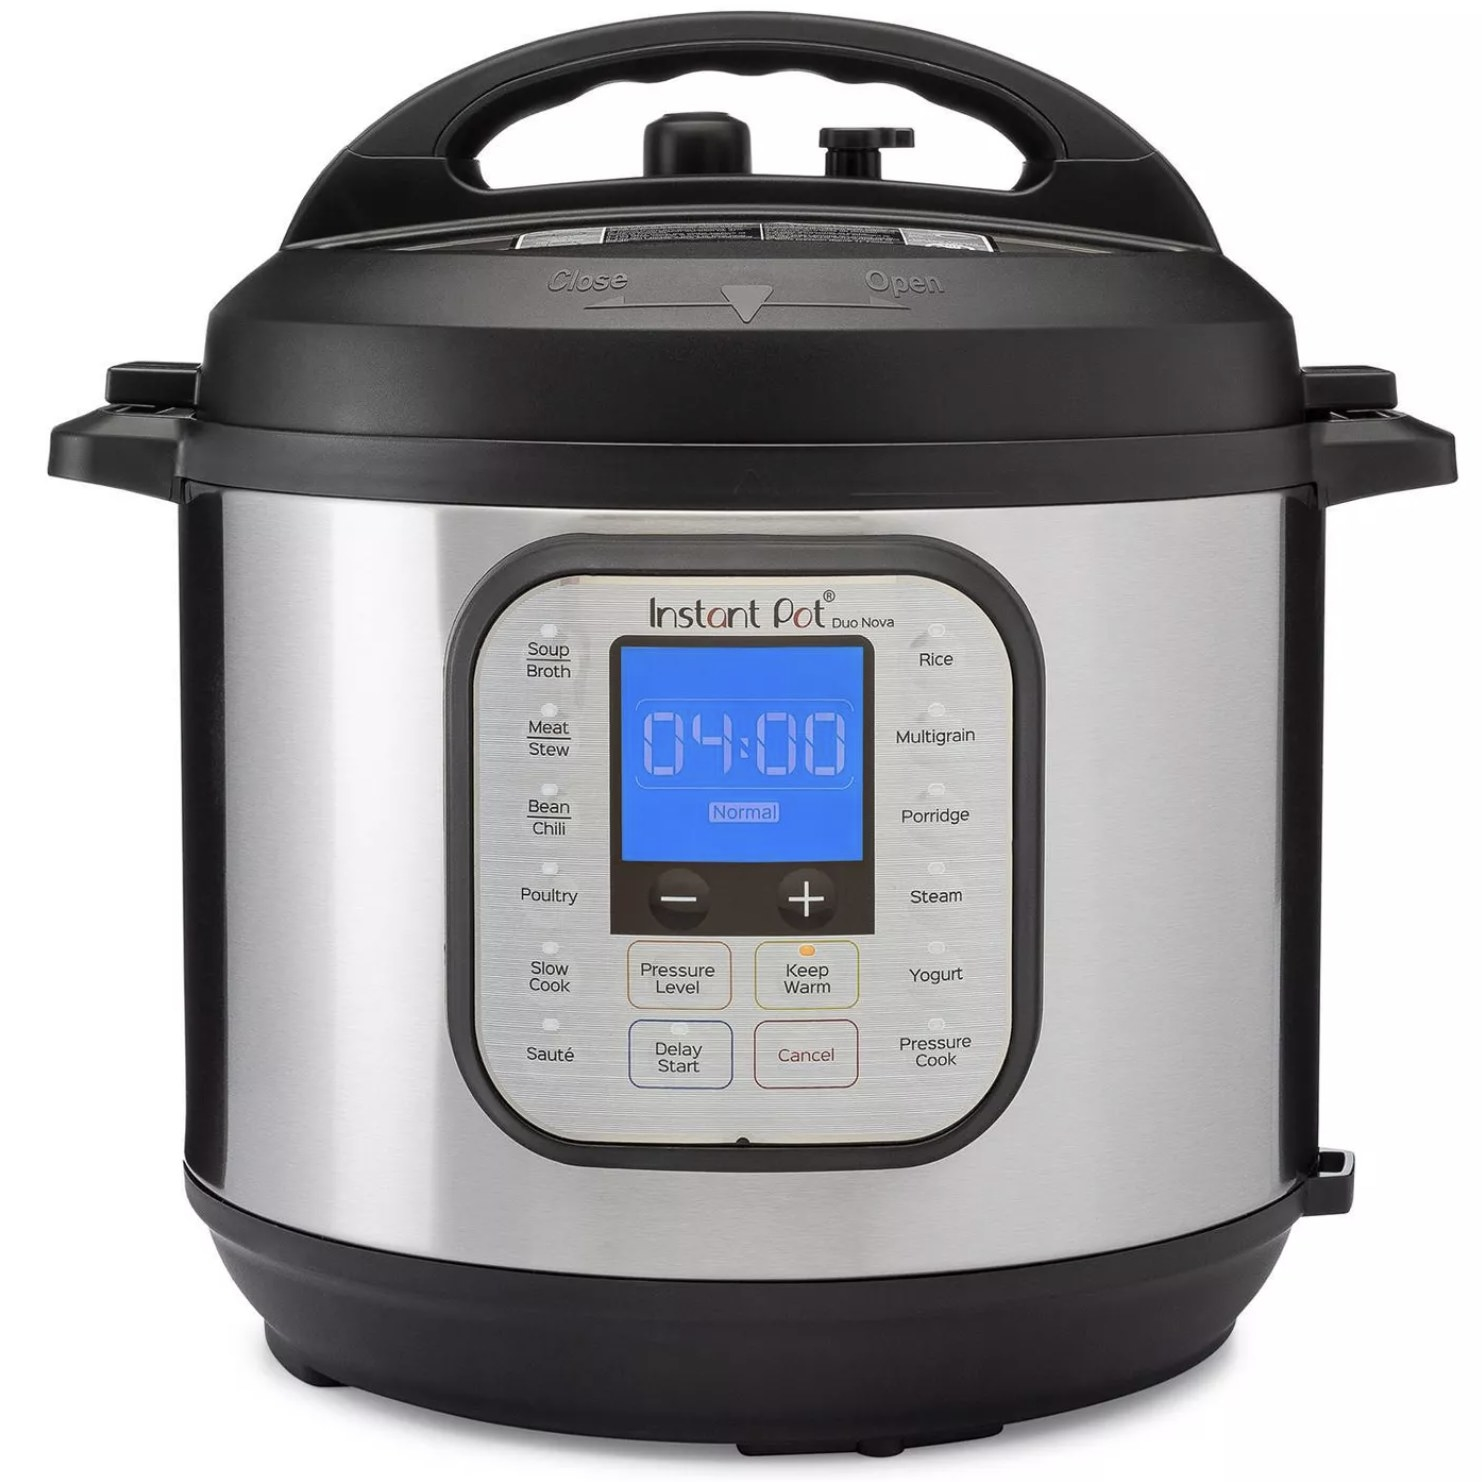 An instant pot with a digital display and setting buttons